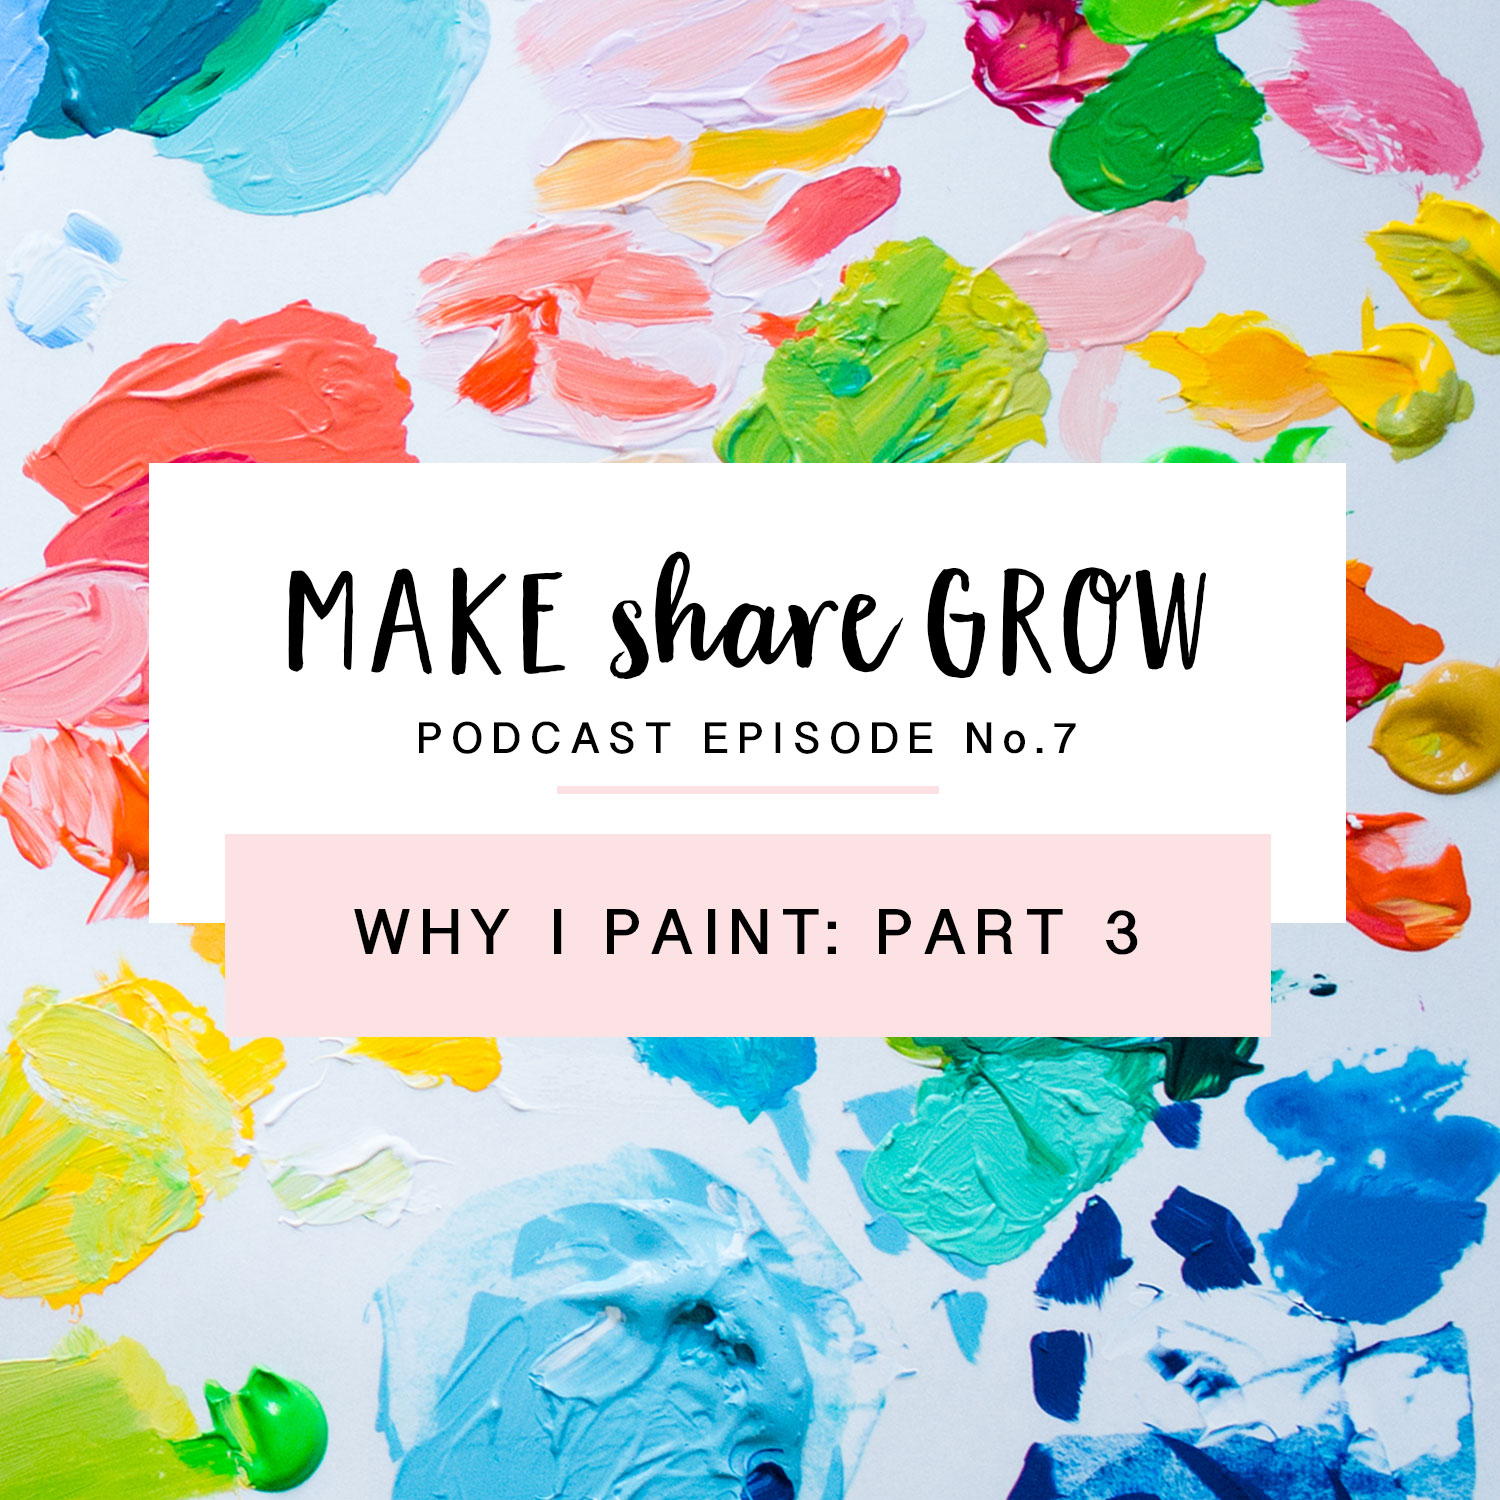 Make-Share-Grow-Podcast-Episode-7-art.jpg